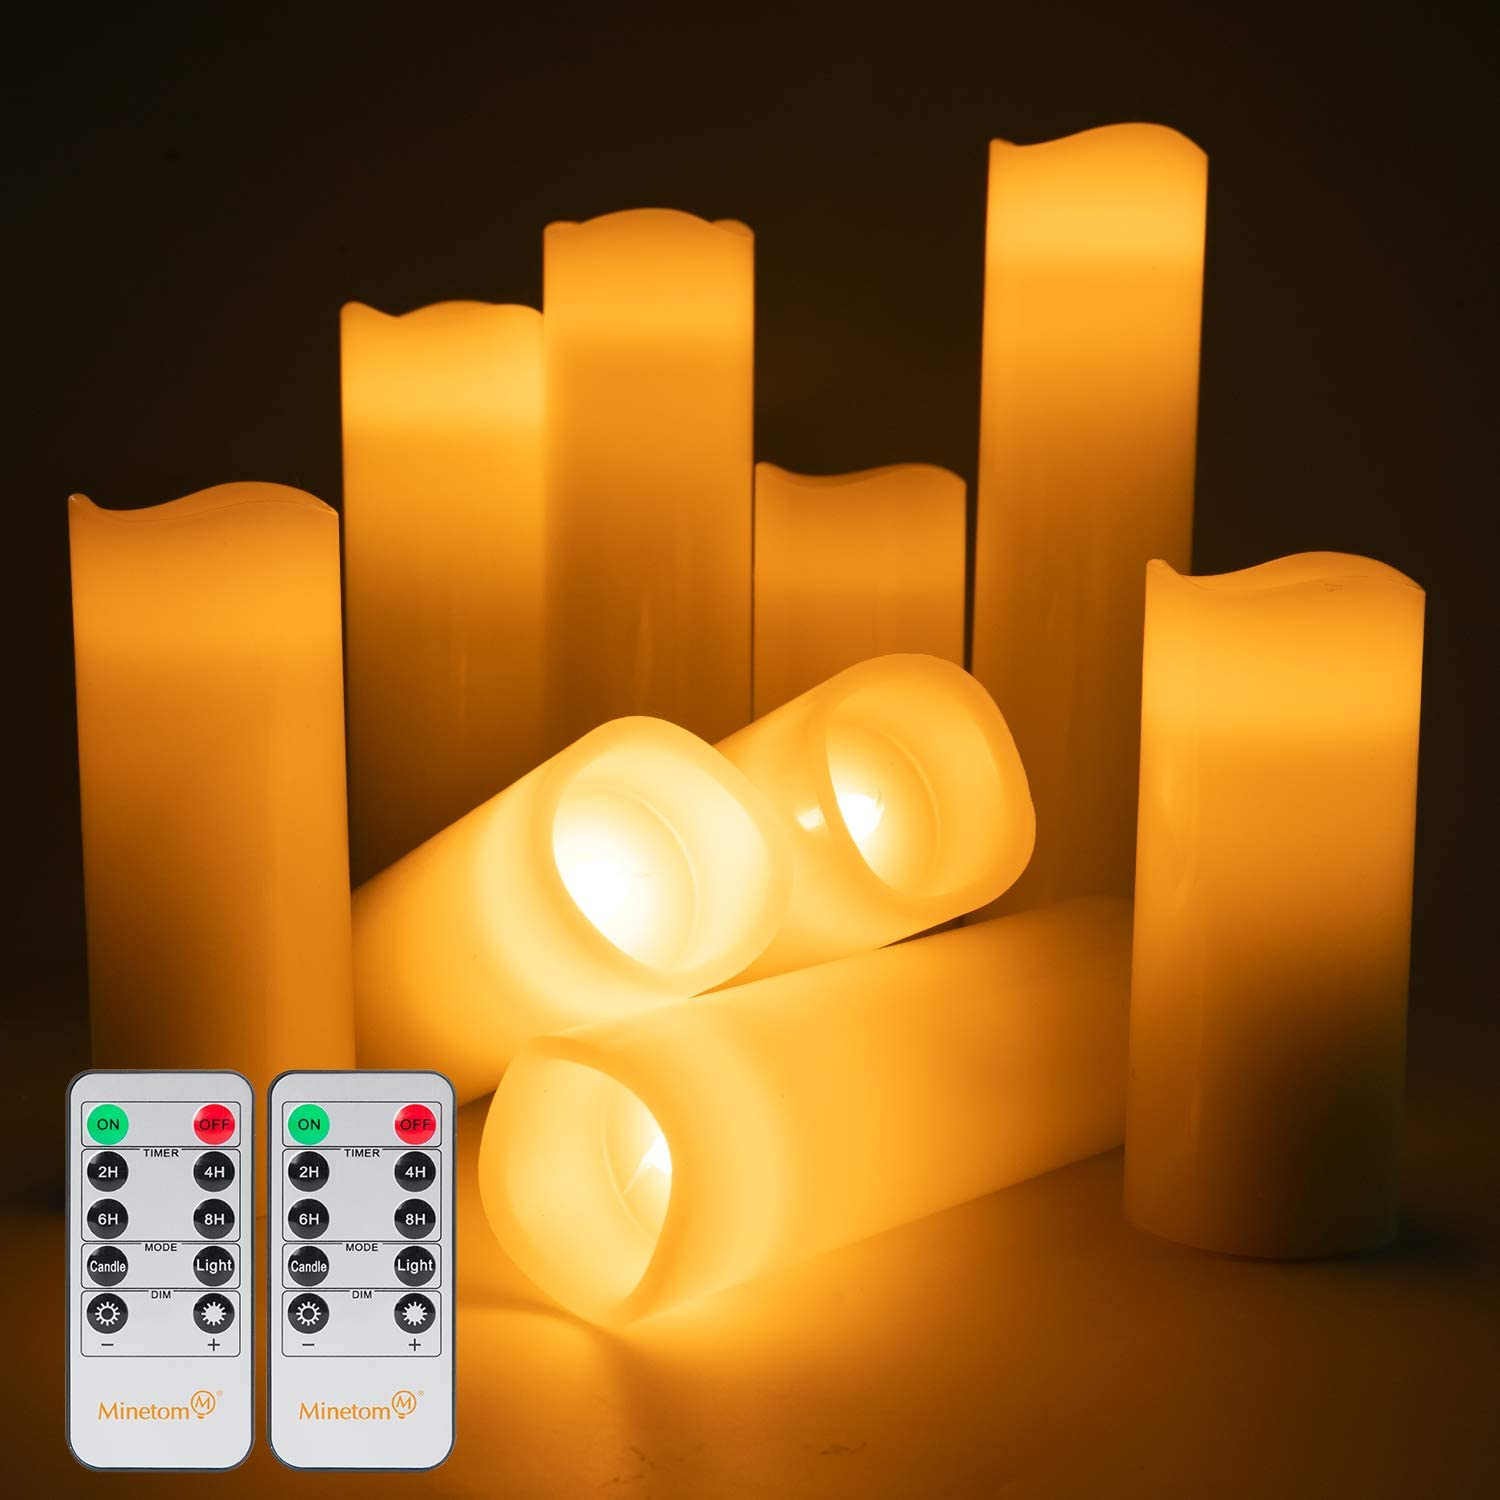 LED Flameless Candles Battery Operated - Minetom 9 Pack (5